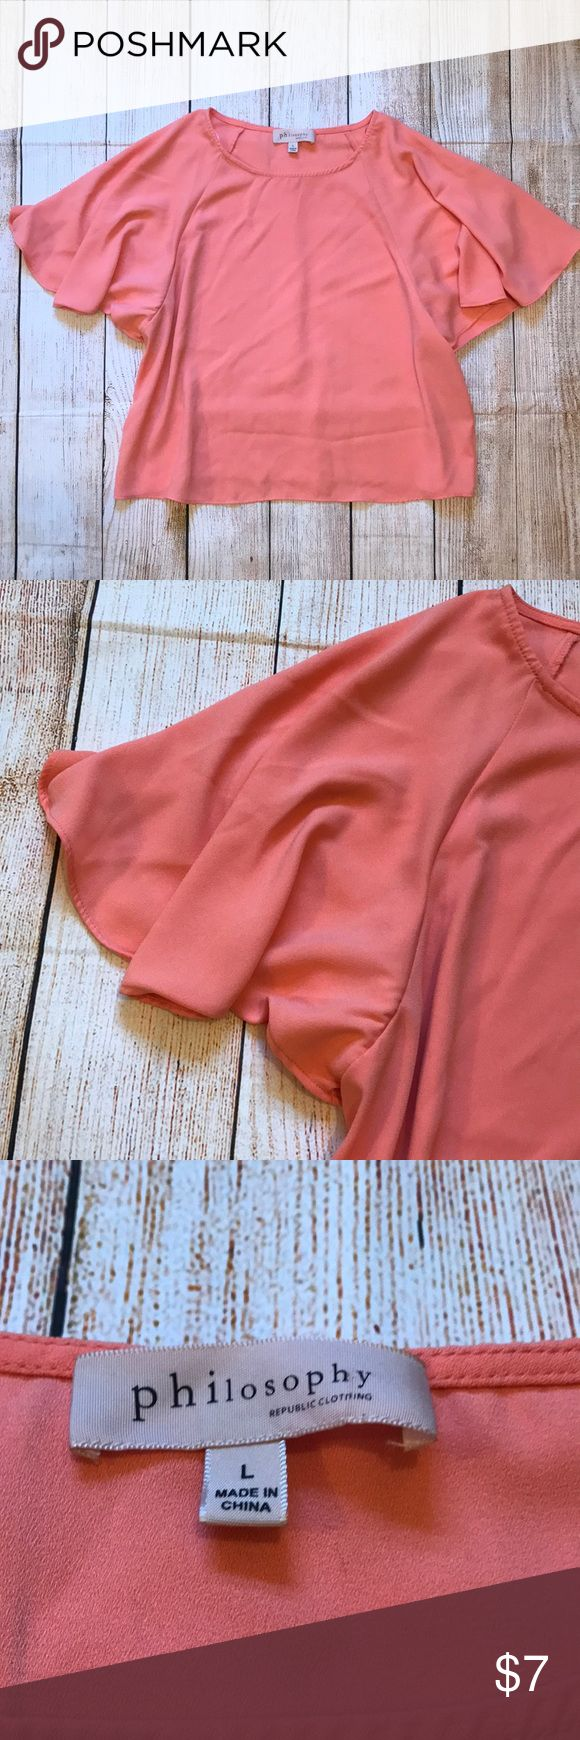 "Philosophy Flutter Sleeve Top Cute coral orange short sleeve top with oversized sleeves. Good condition, has small snag in material in the back of the shirt. 40"" Bust 19.5"" Long 100% Polyester Philosophy Tops Tees - Short Sleeve"